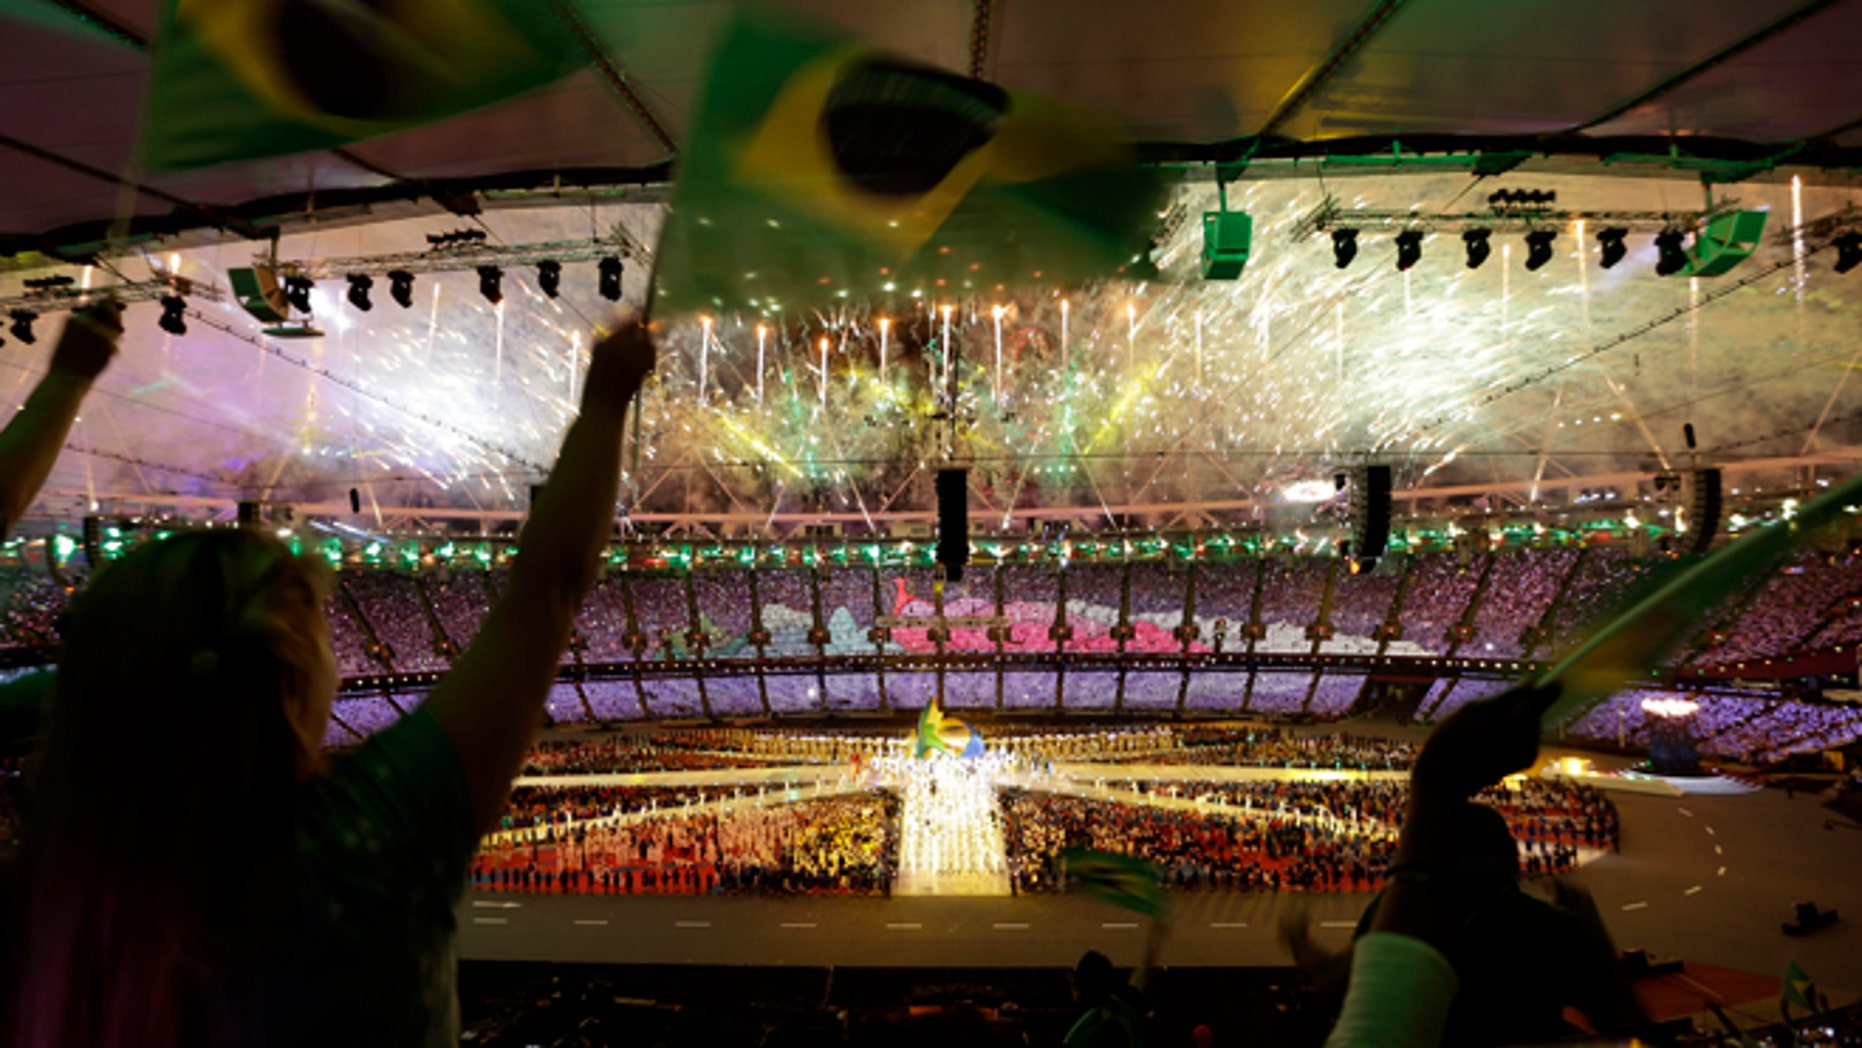 Spectators wave Brazilian flags as fireworks explode over the Olympic stadium during the Closing Ceremony at the 2012 Summer Olympics, Sunday, Aug. 12, 2012, in London. (AP Photo/Hassan Ammar)